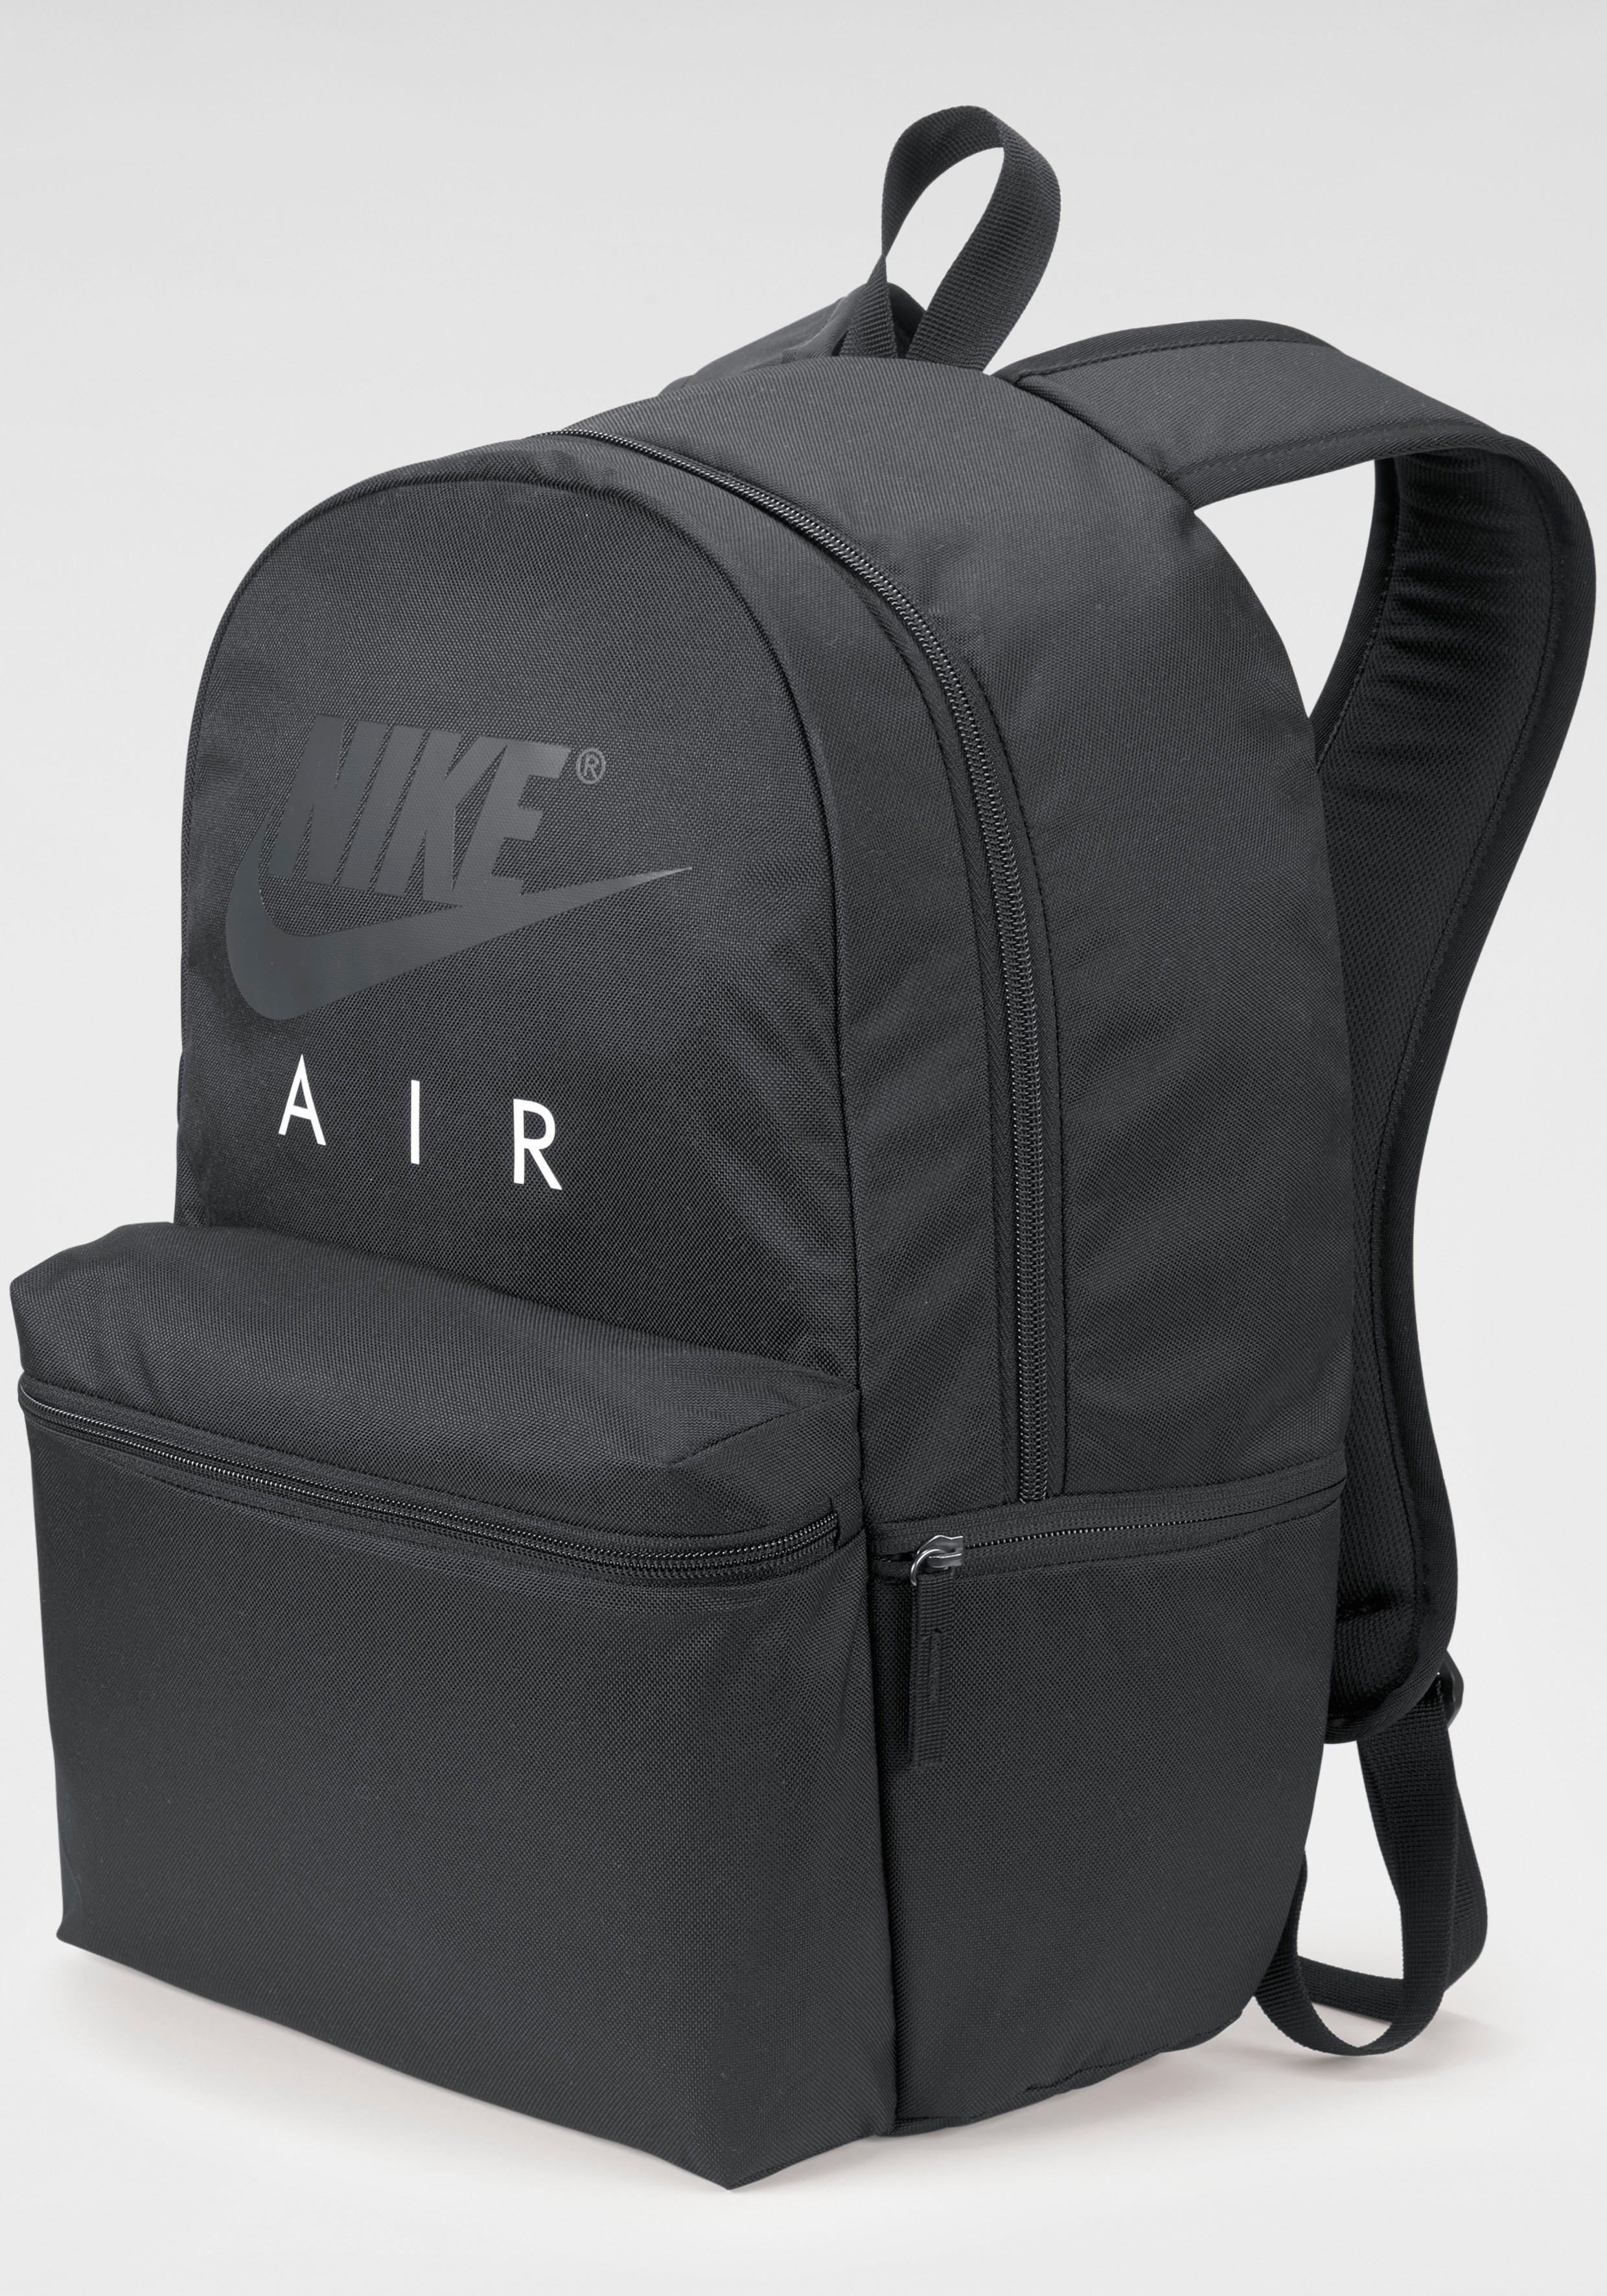 a7eed441d8d Nike Brasilia 8 X Small Duffel Bag | The Shred Centre